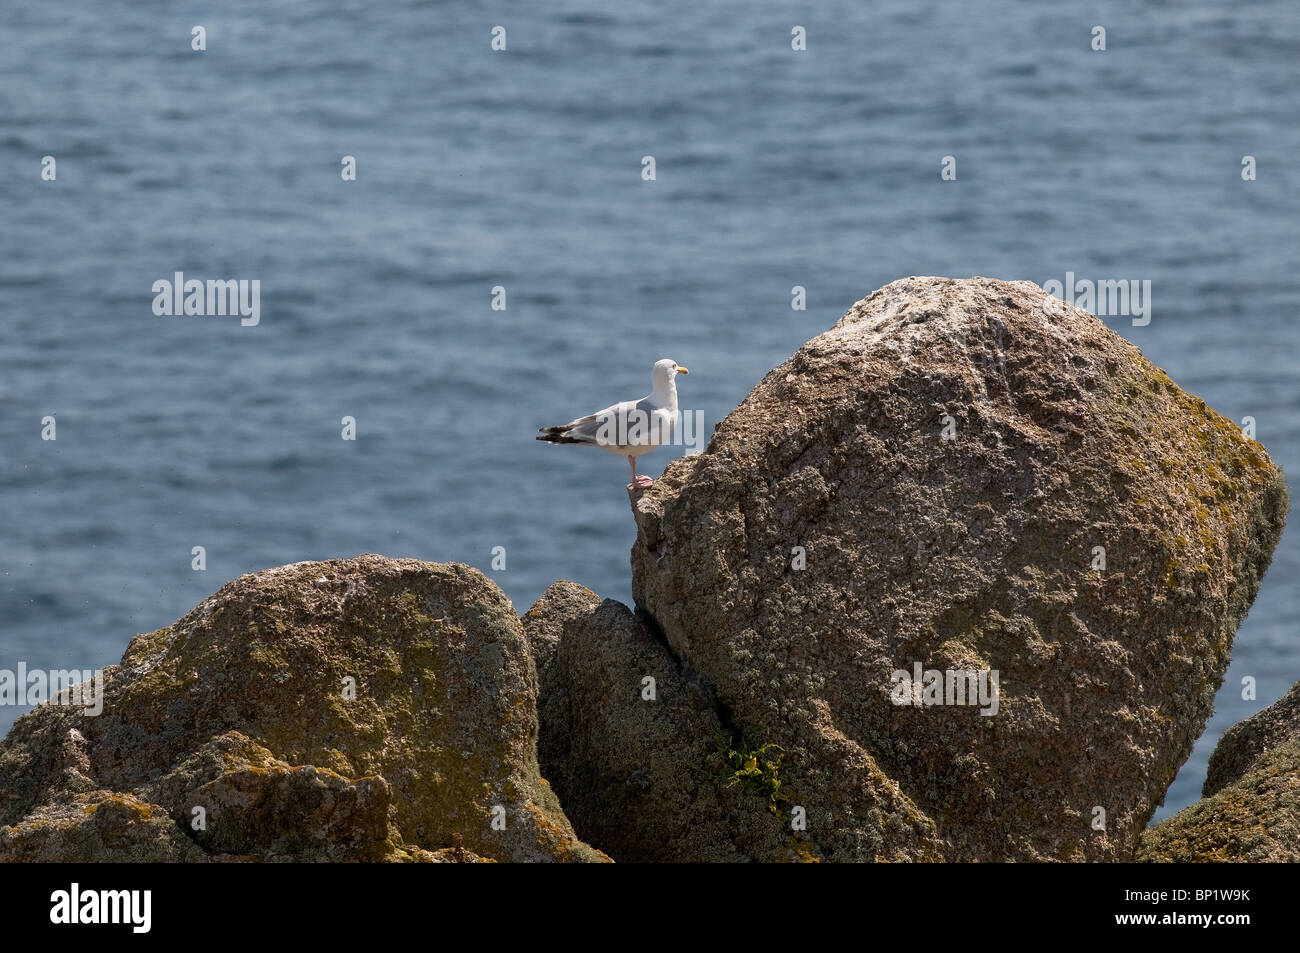 A seagull perched on rocks on the coast of Gwennap Head in Cornwall. Photo by Gordon Scammell - Stock Image